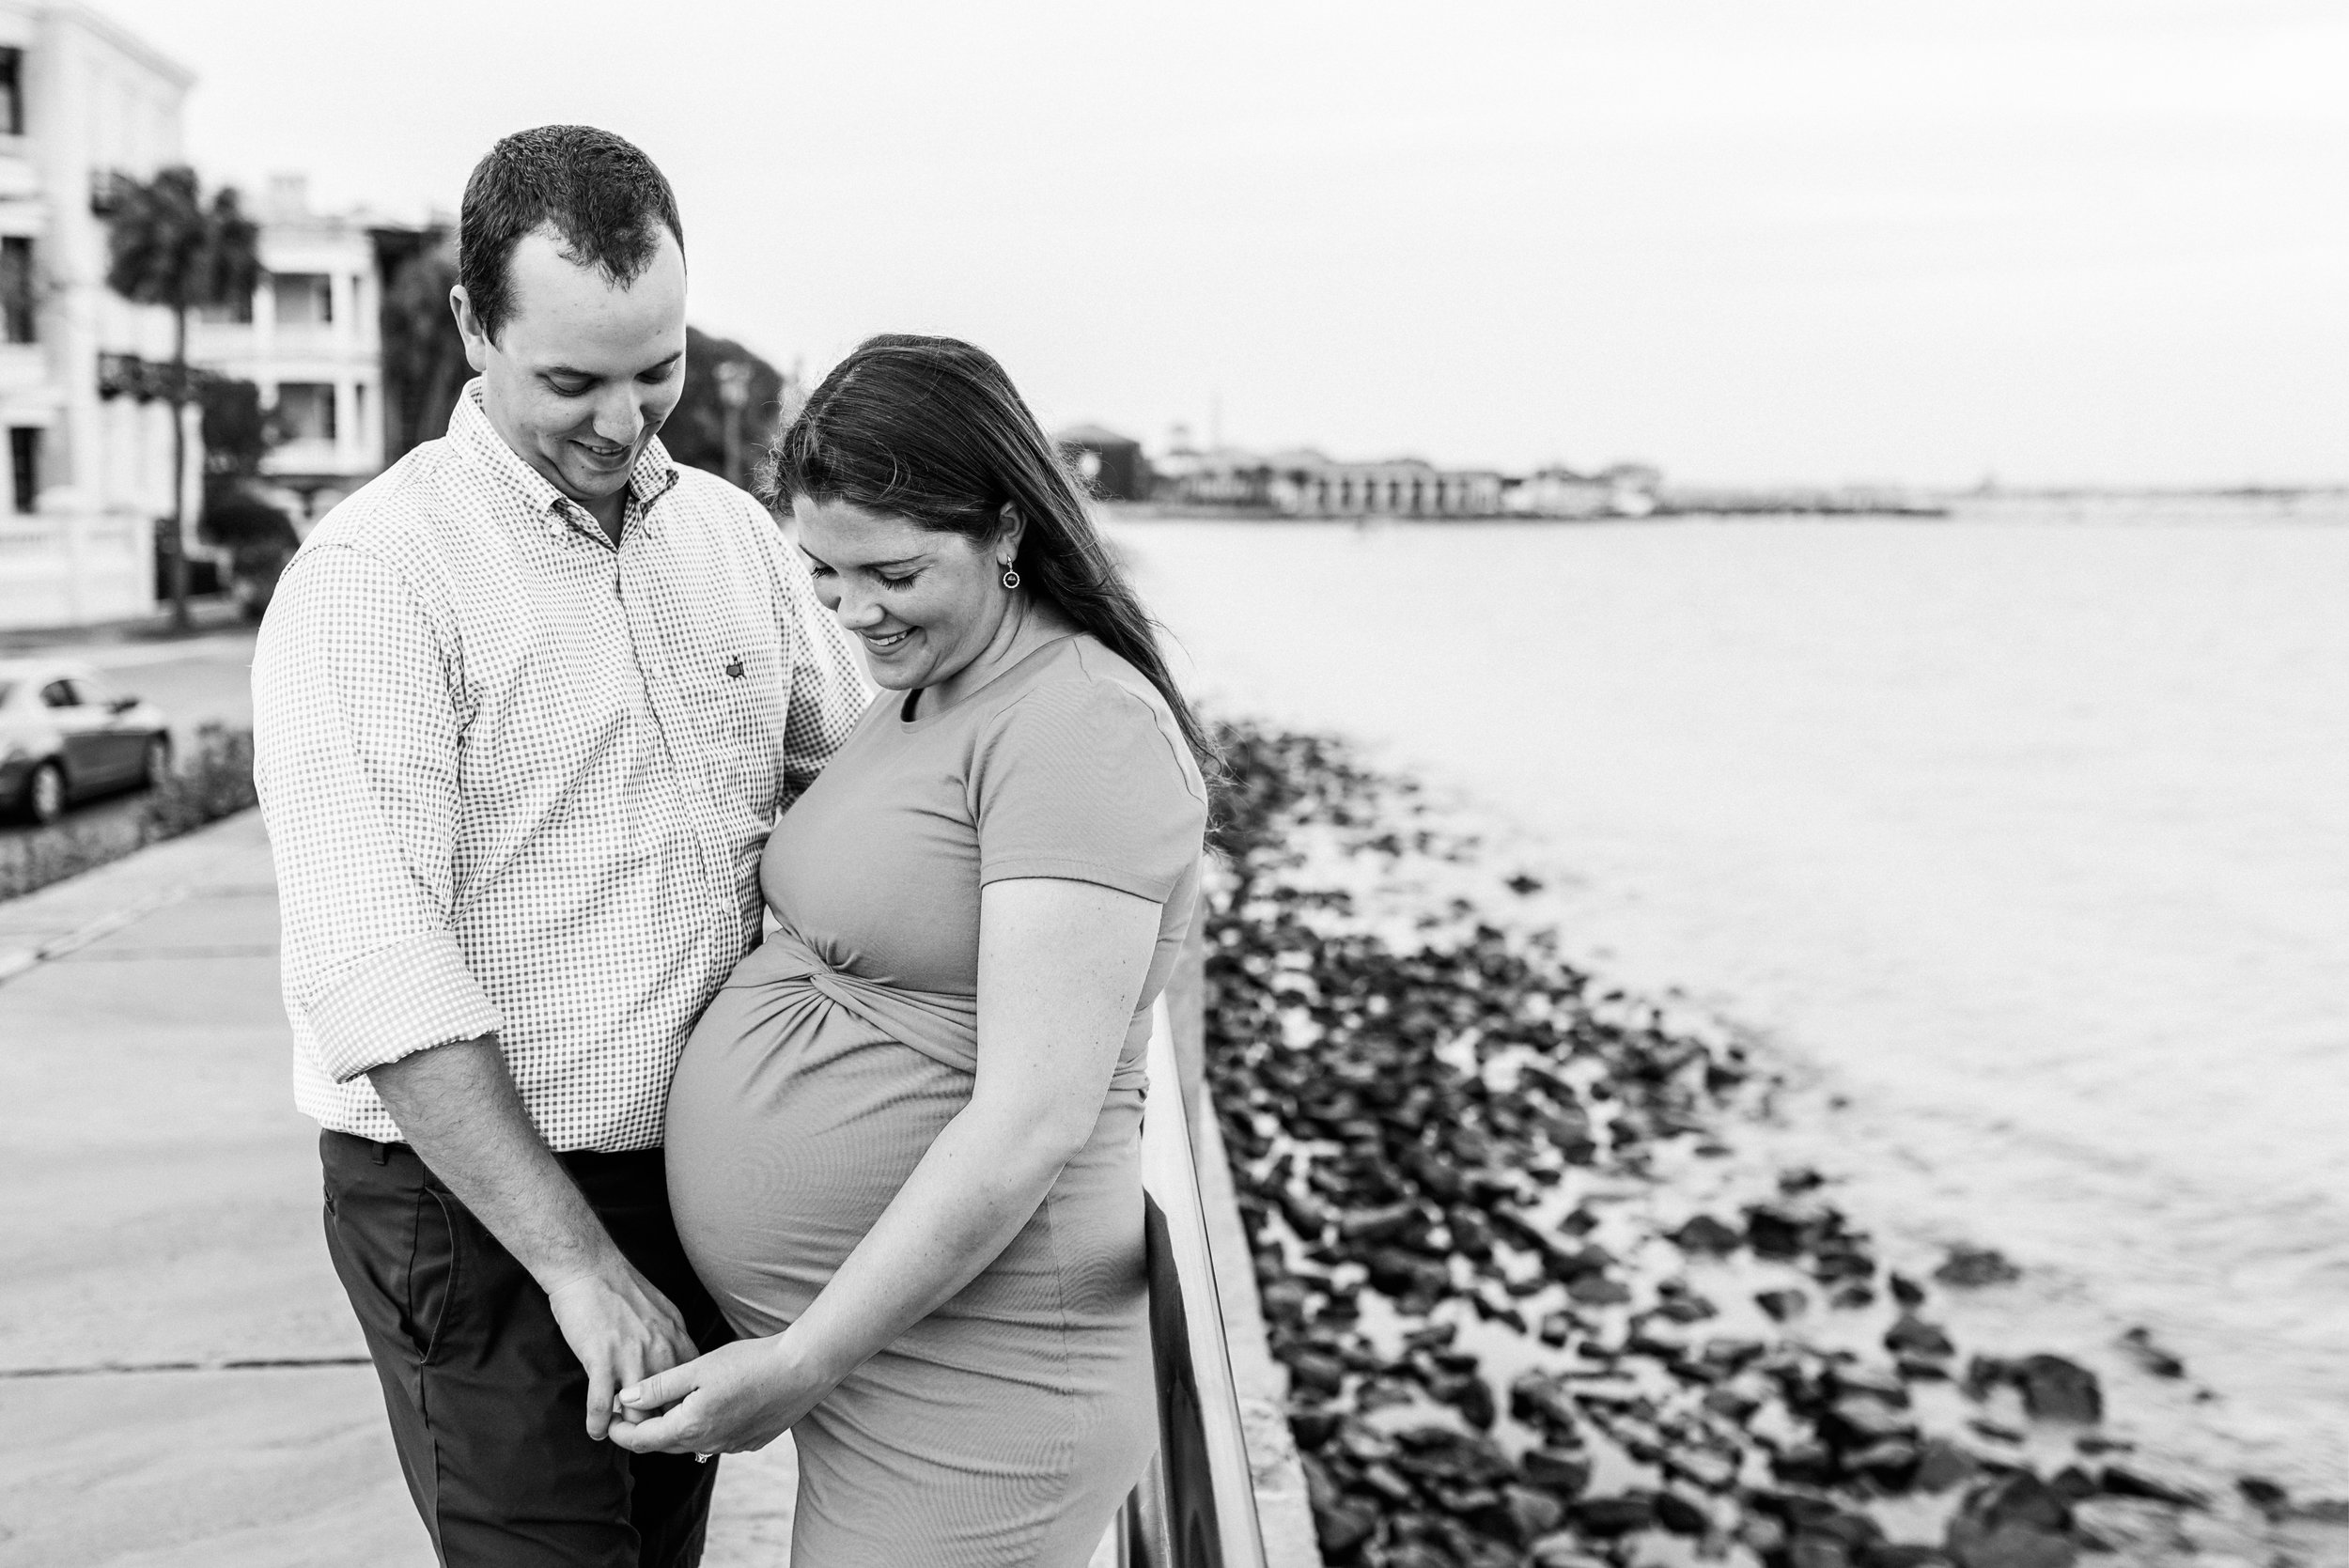 Charleston-Maternity-Photographer-Following-Seas-Photography-FSP_3239BW copy.jpg